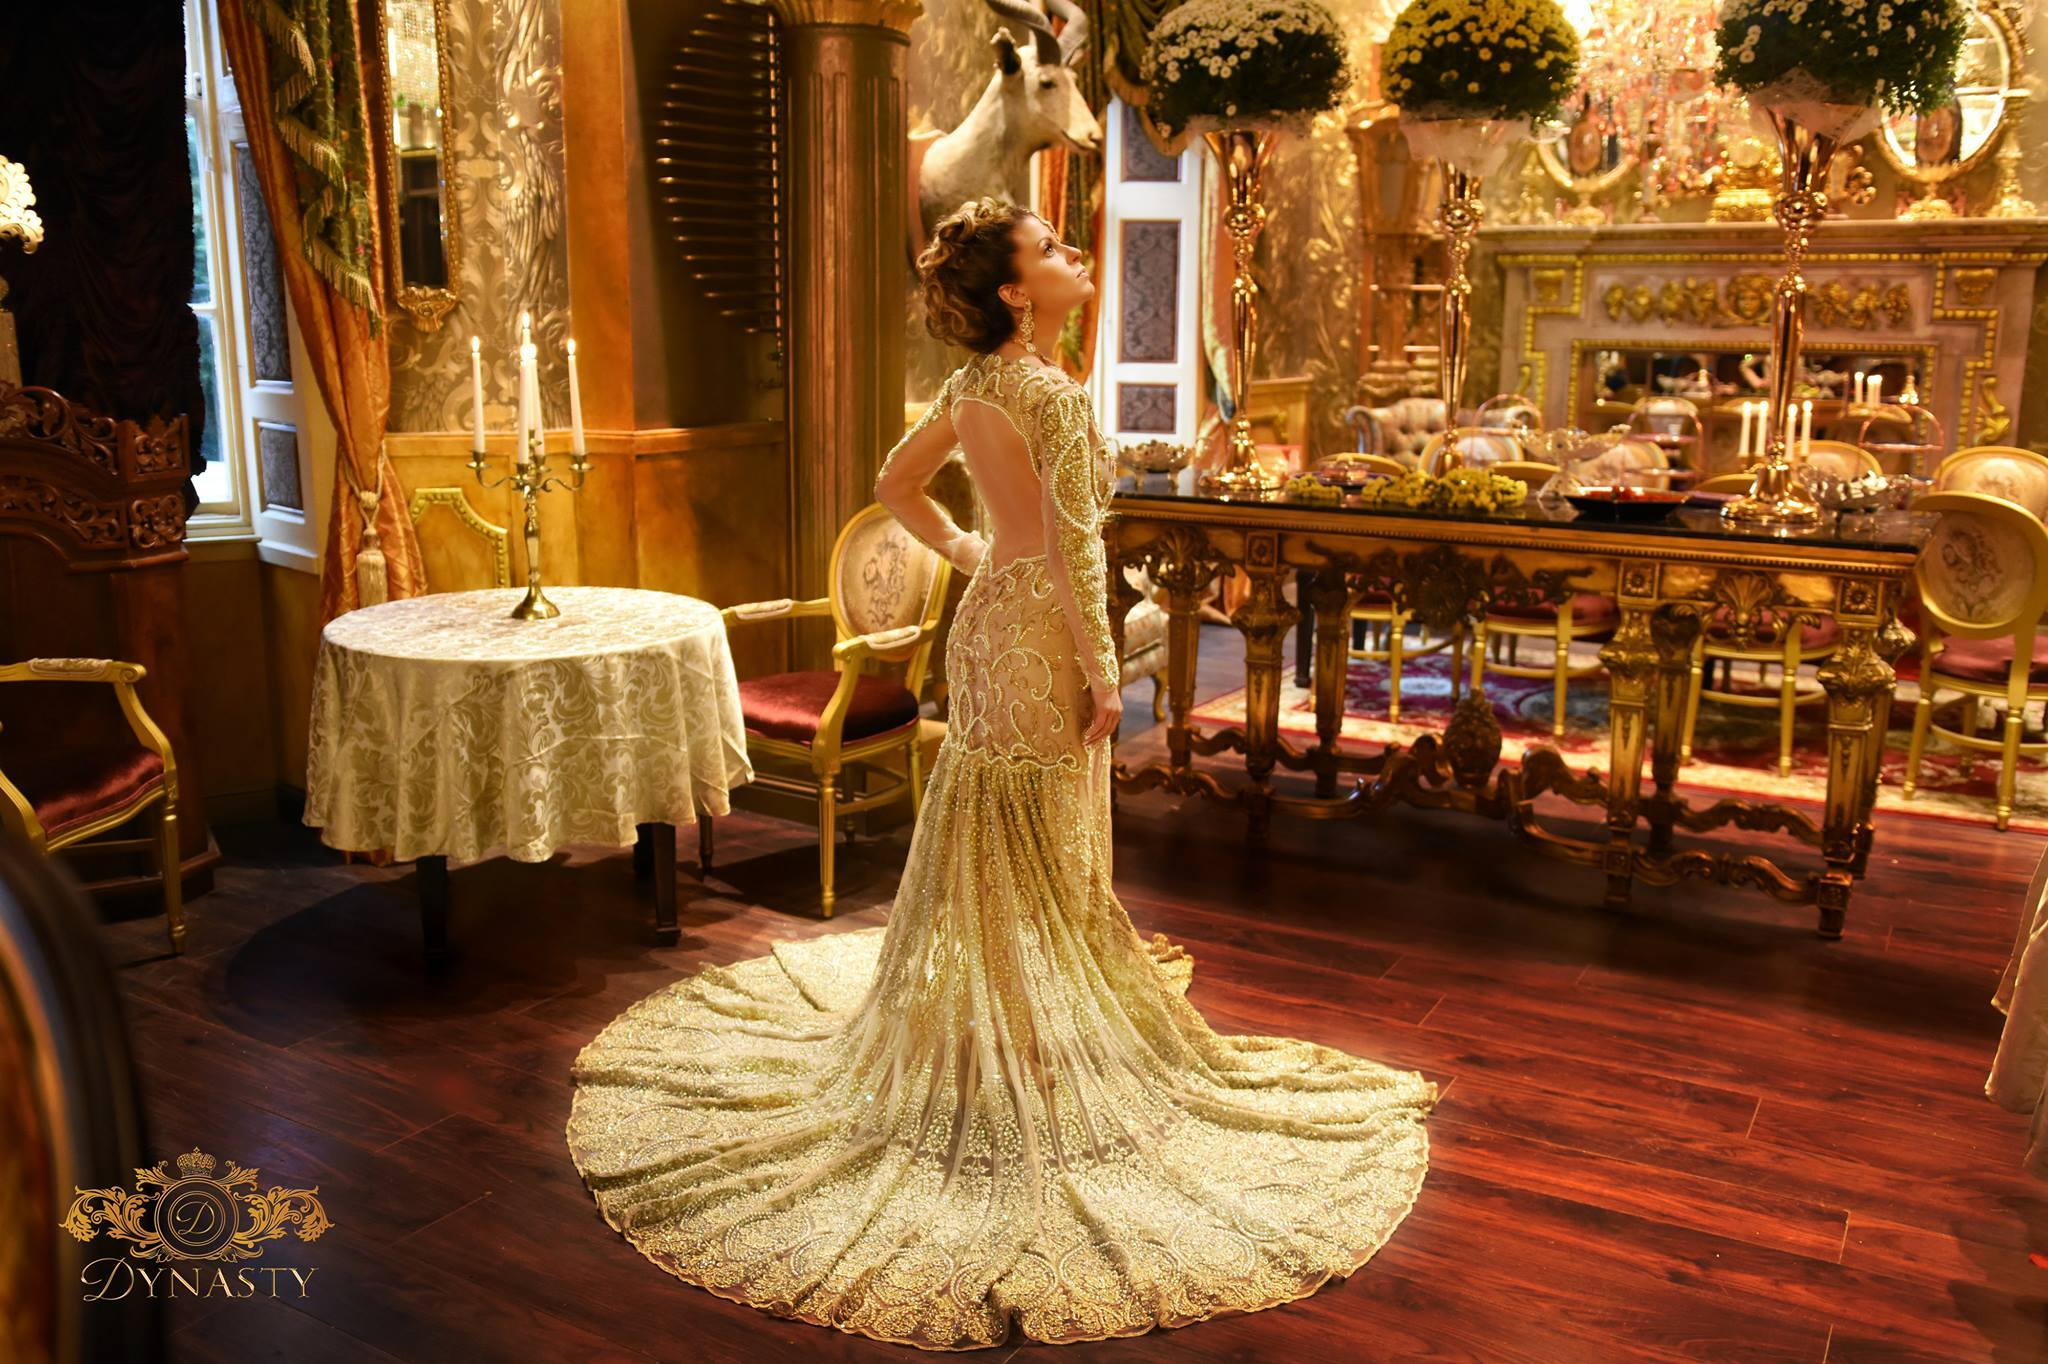 Dynasty's promotional photo shows a model admiring the opulent interior of the restaurant.